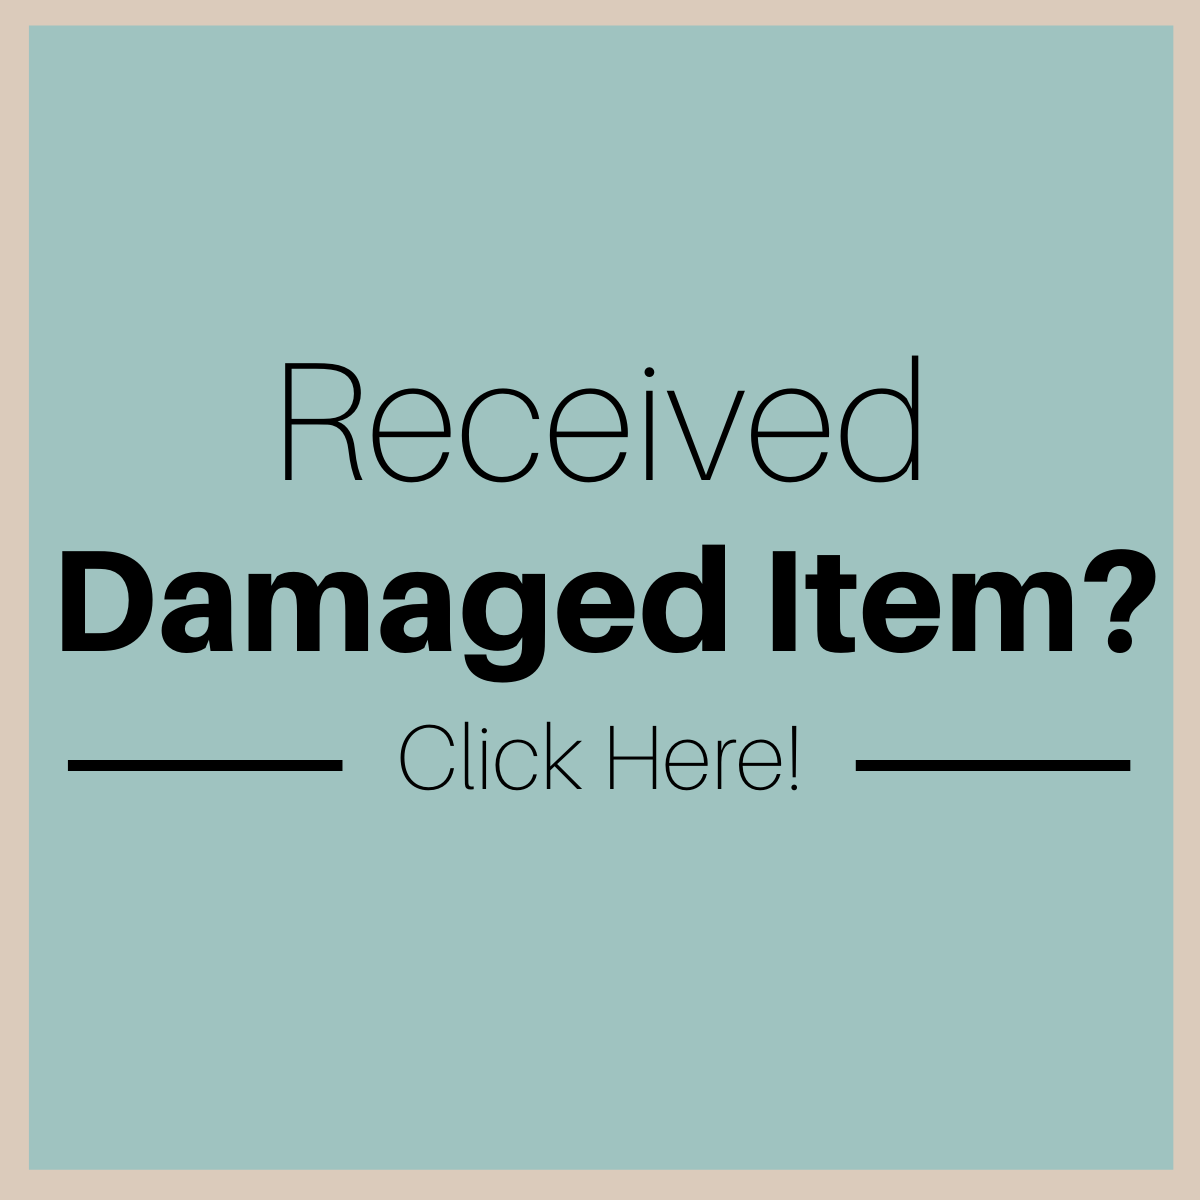 Received a Damaged Item?